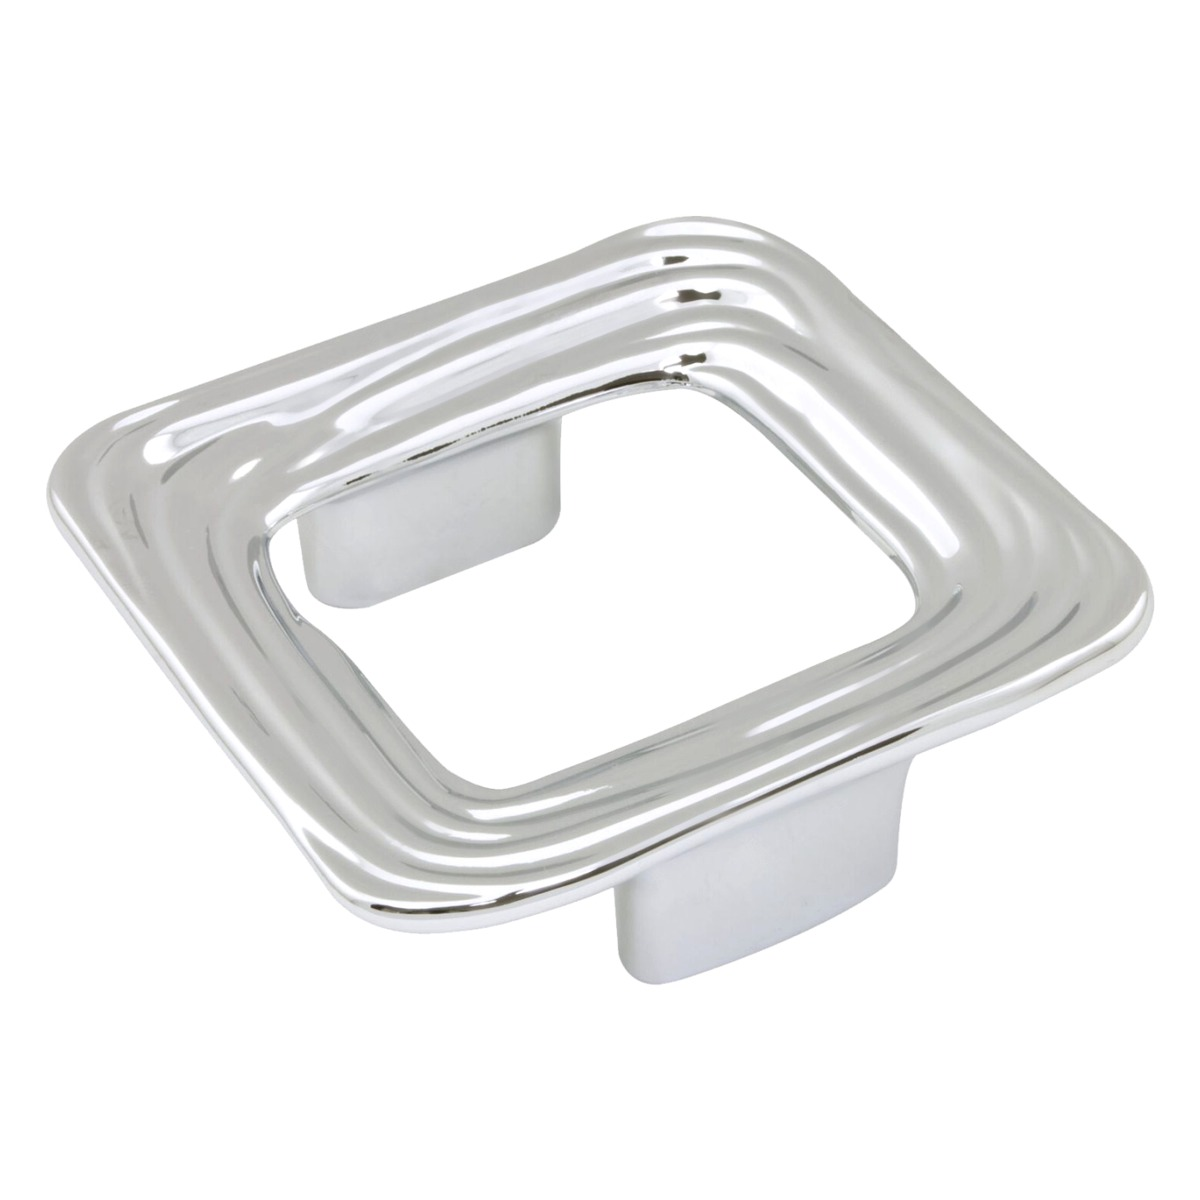 Wide Momentum Square Style 1-1/4 Inch Center To Center Chrome, Cabinet  Hardware Finger Pull / Handle